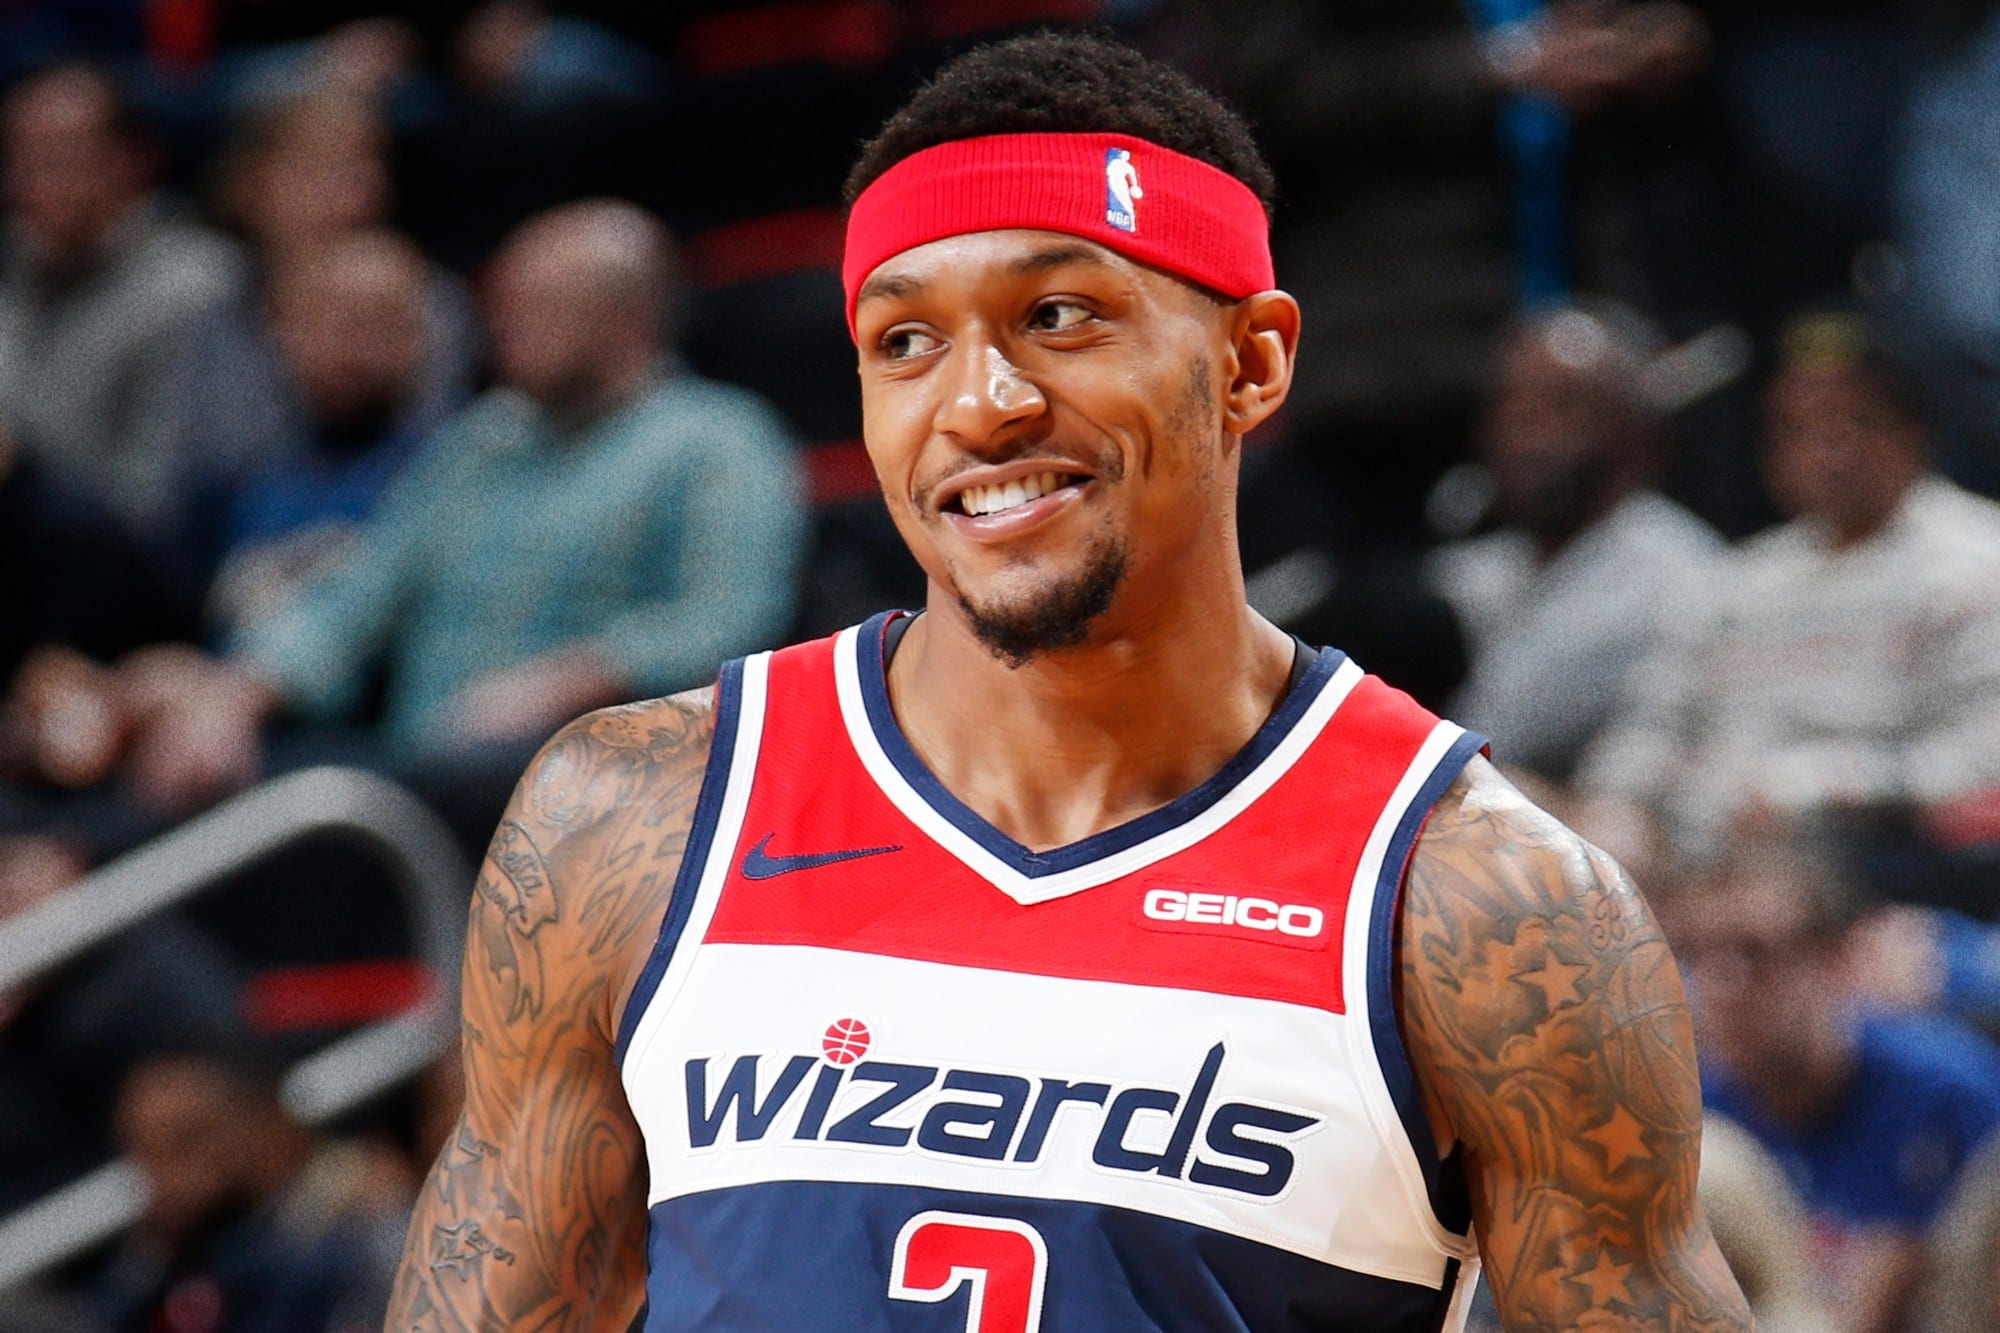 Bradley Beal Flattered by Nets Interest, Says He's Happy in Washington